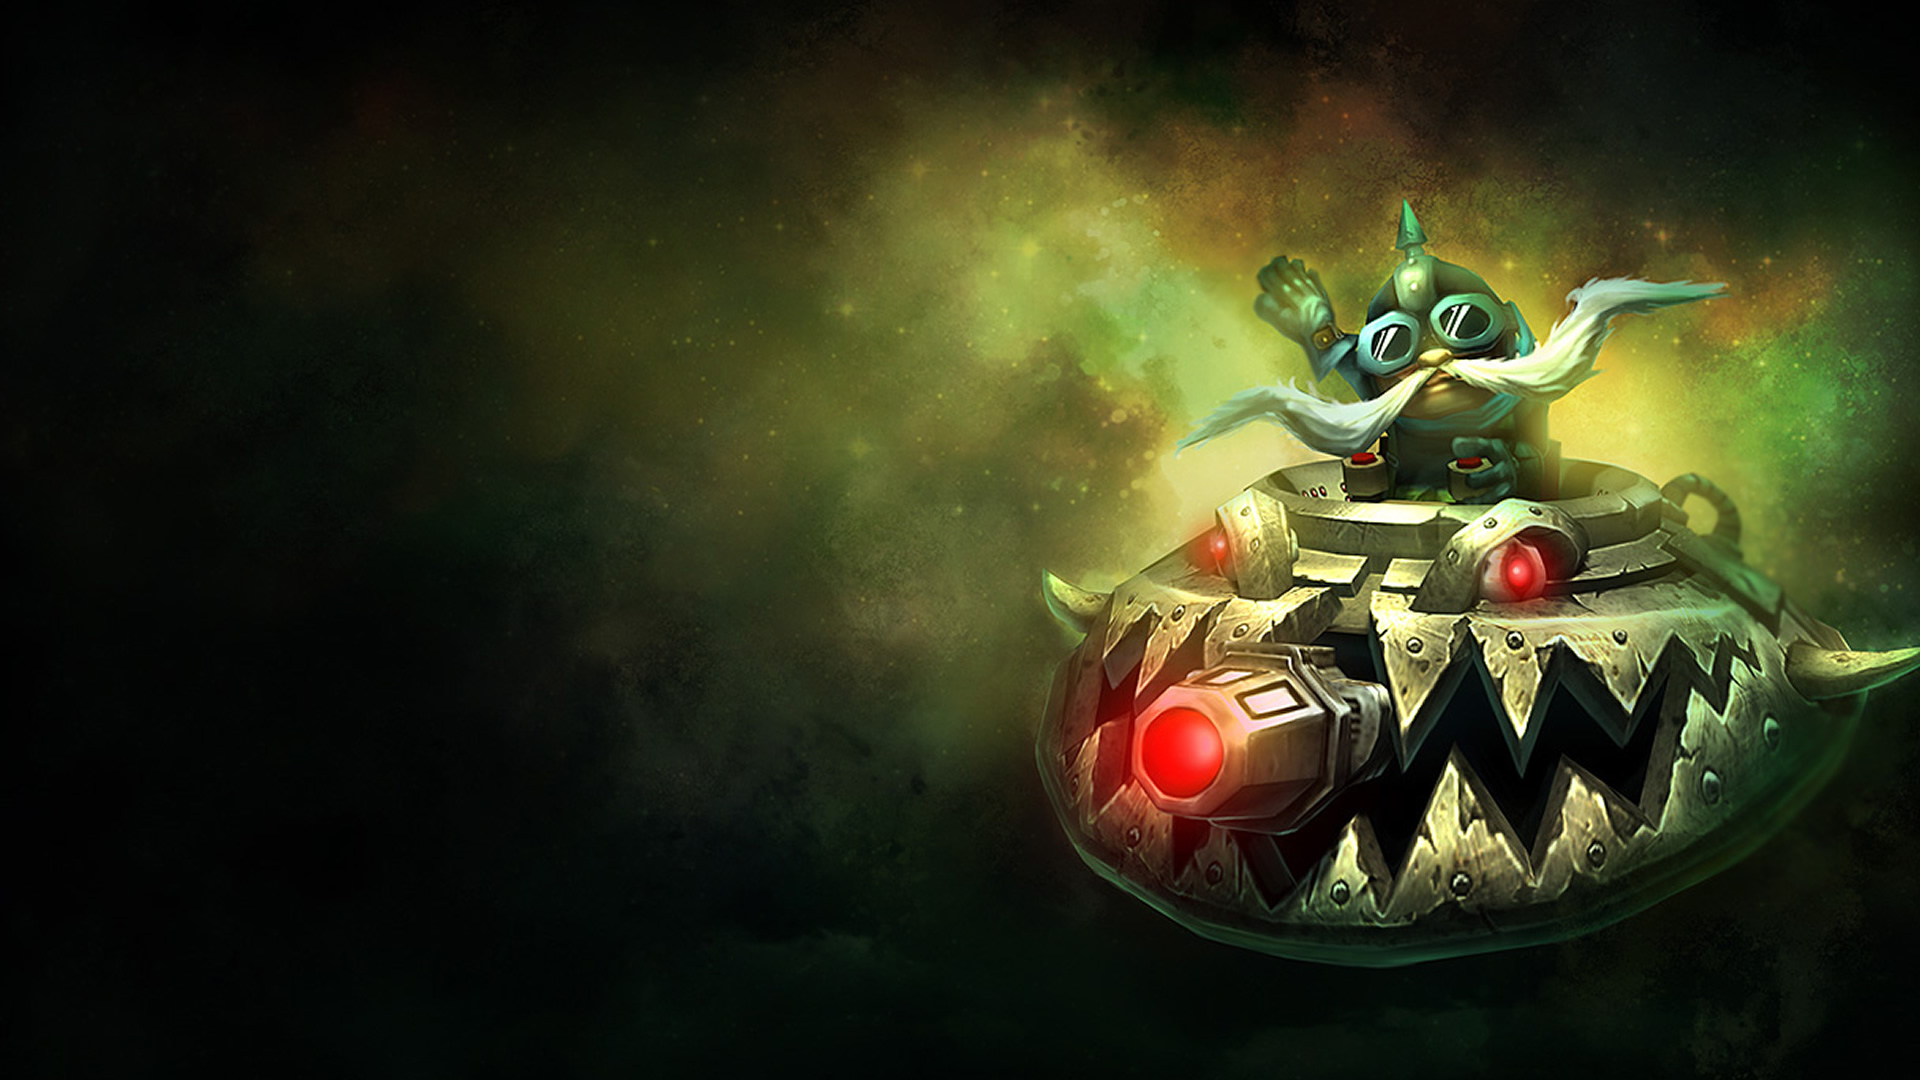 UFO Corki Old Splash Art wallpaper